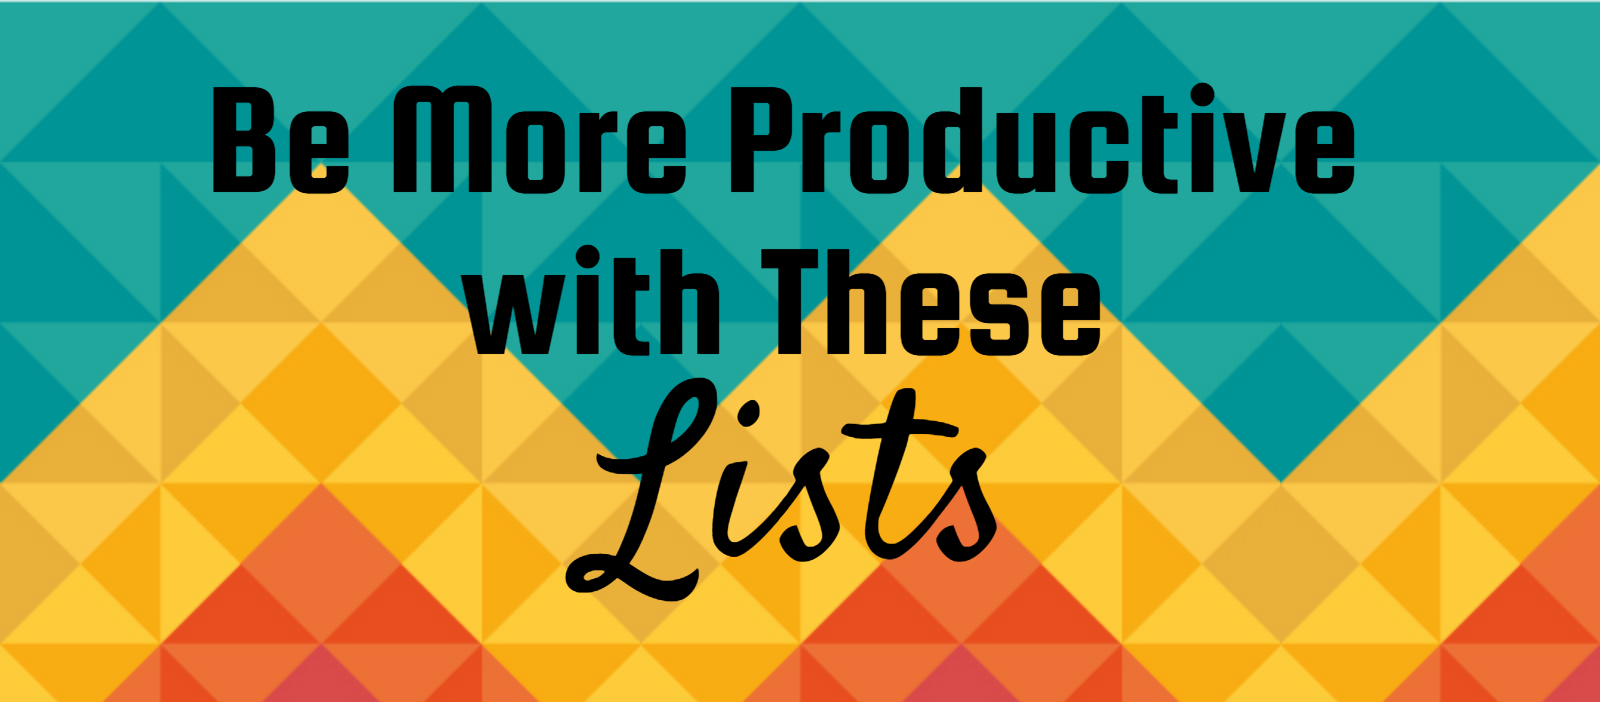 Be more productive with these lists